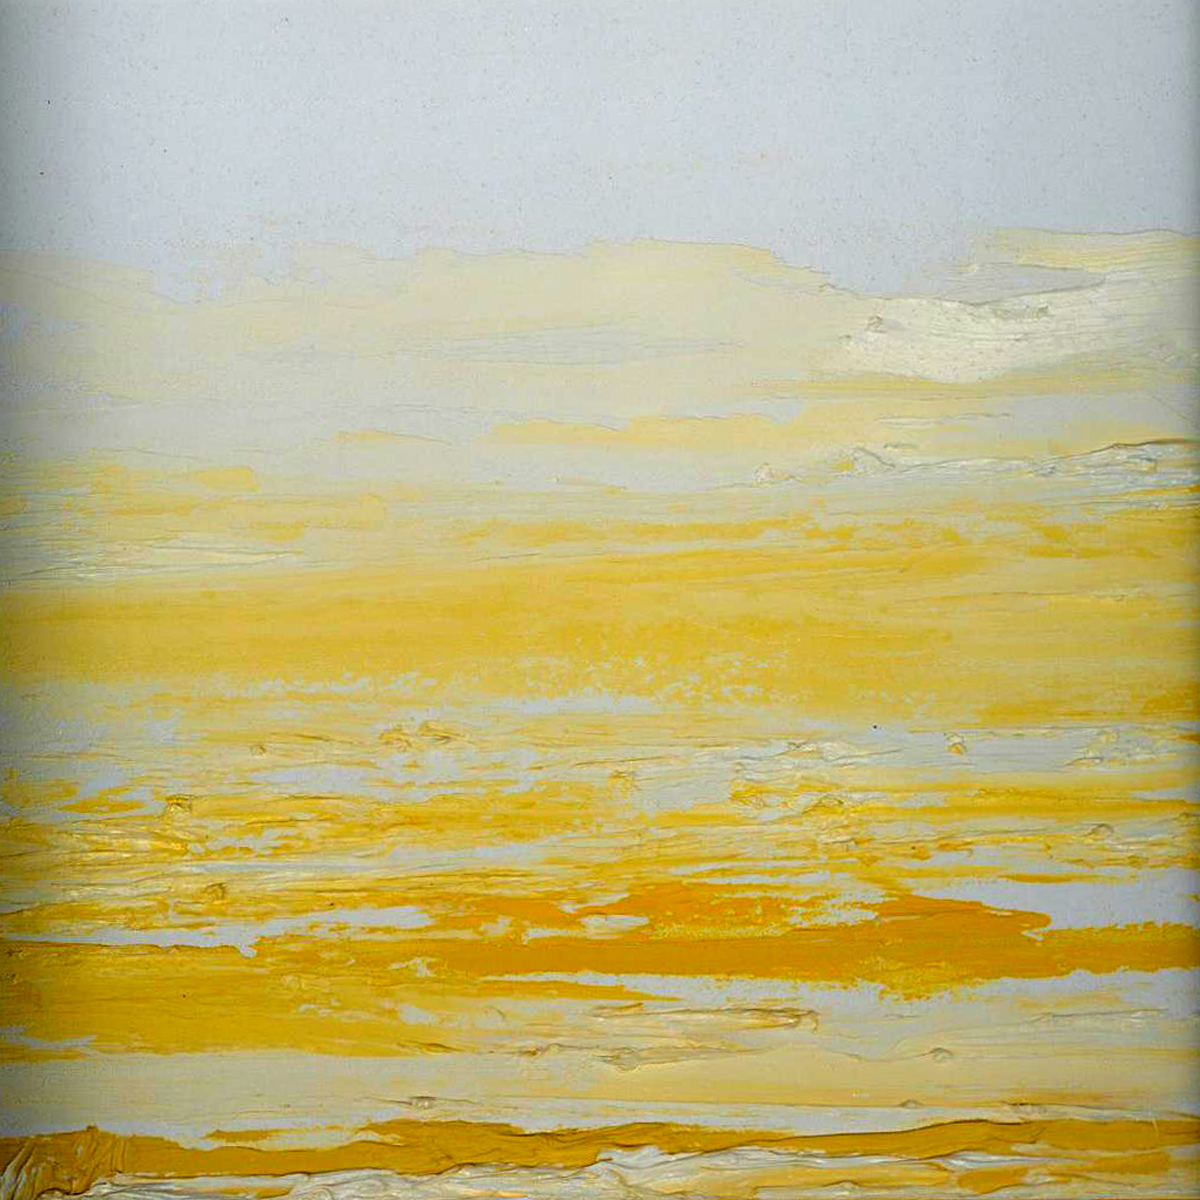 At The Horizon Study 2-24-11, oil-on-board, 8 by 8 inches, 2011 - $750